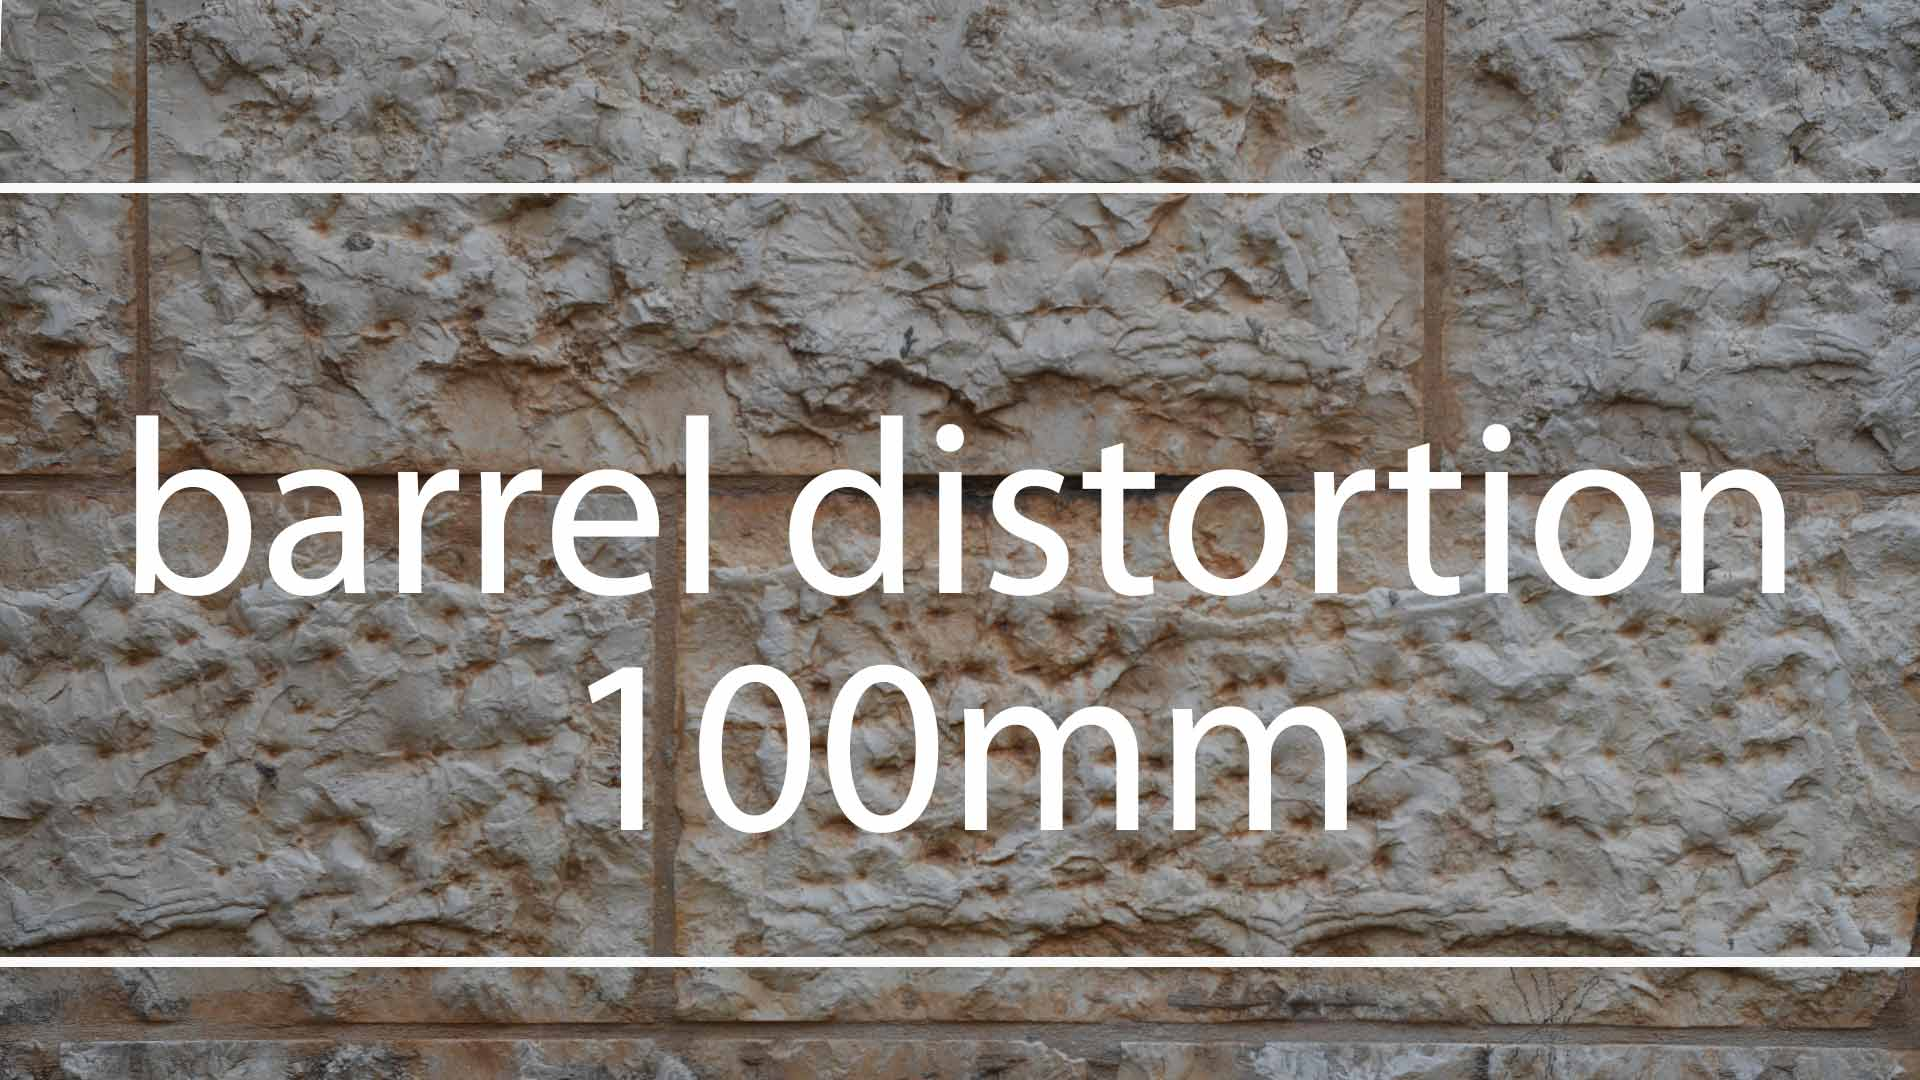 barrel-distortion-100mm